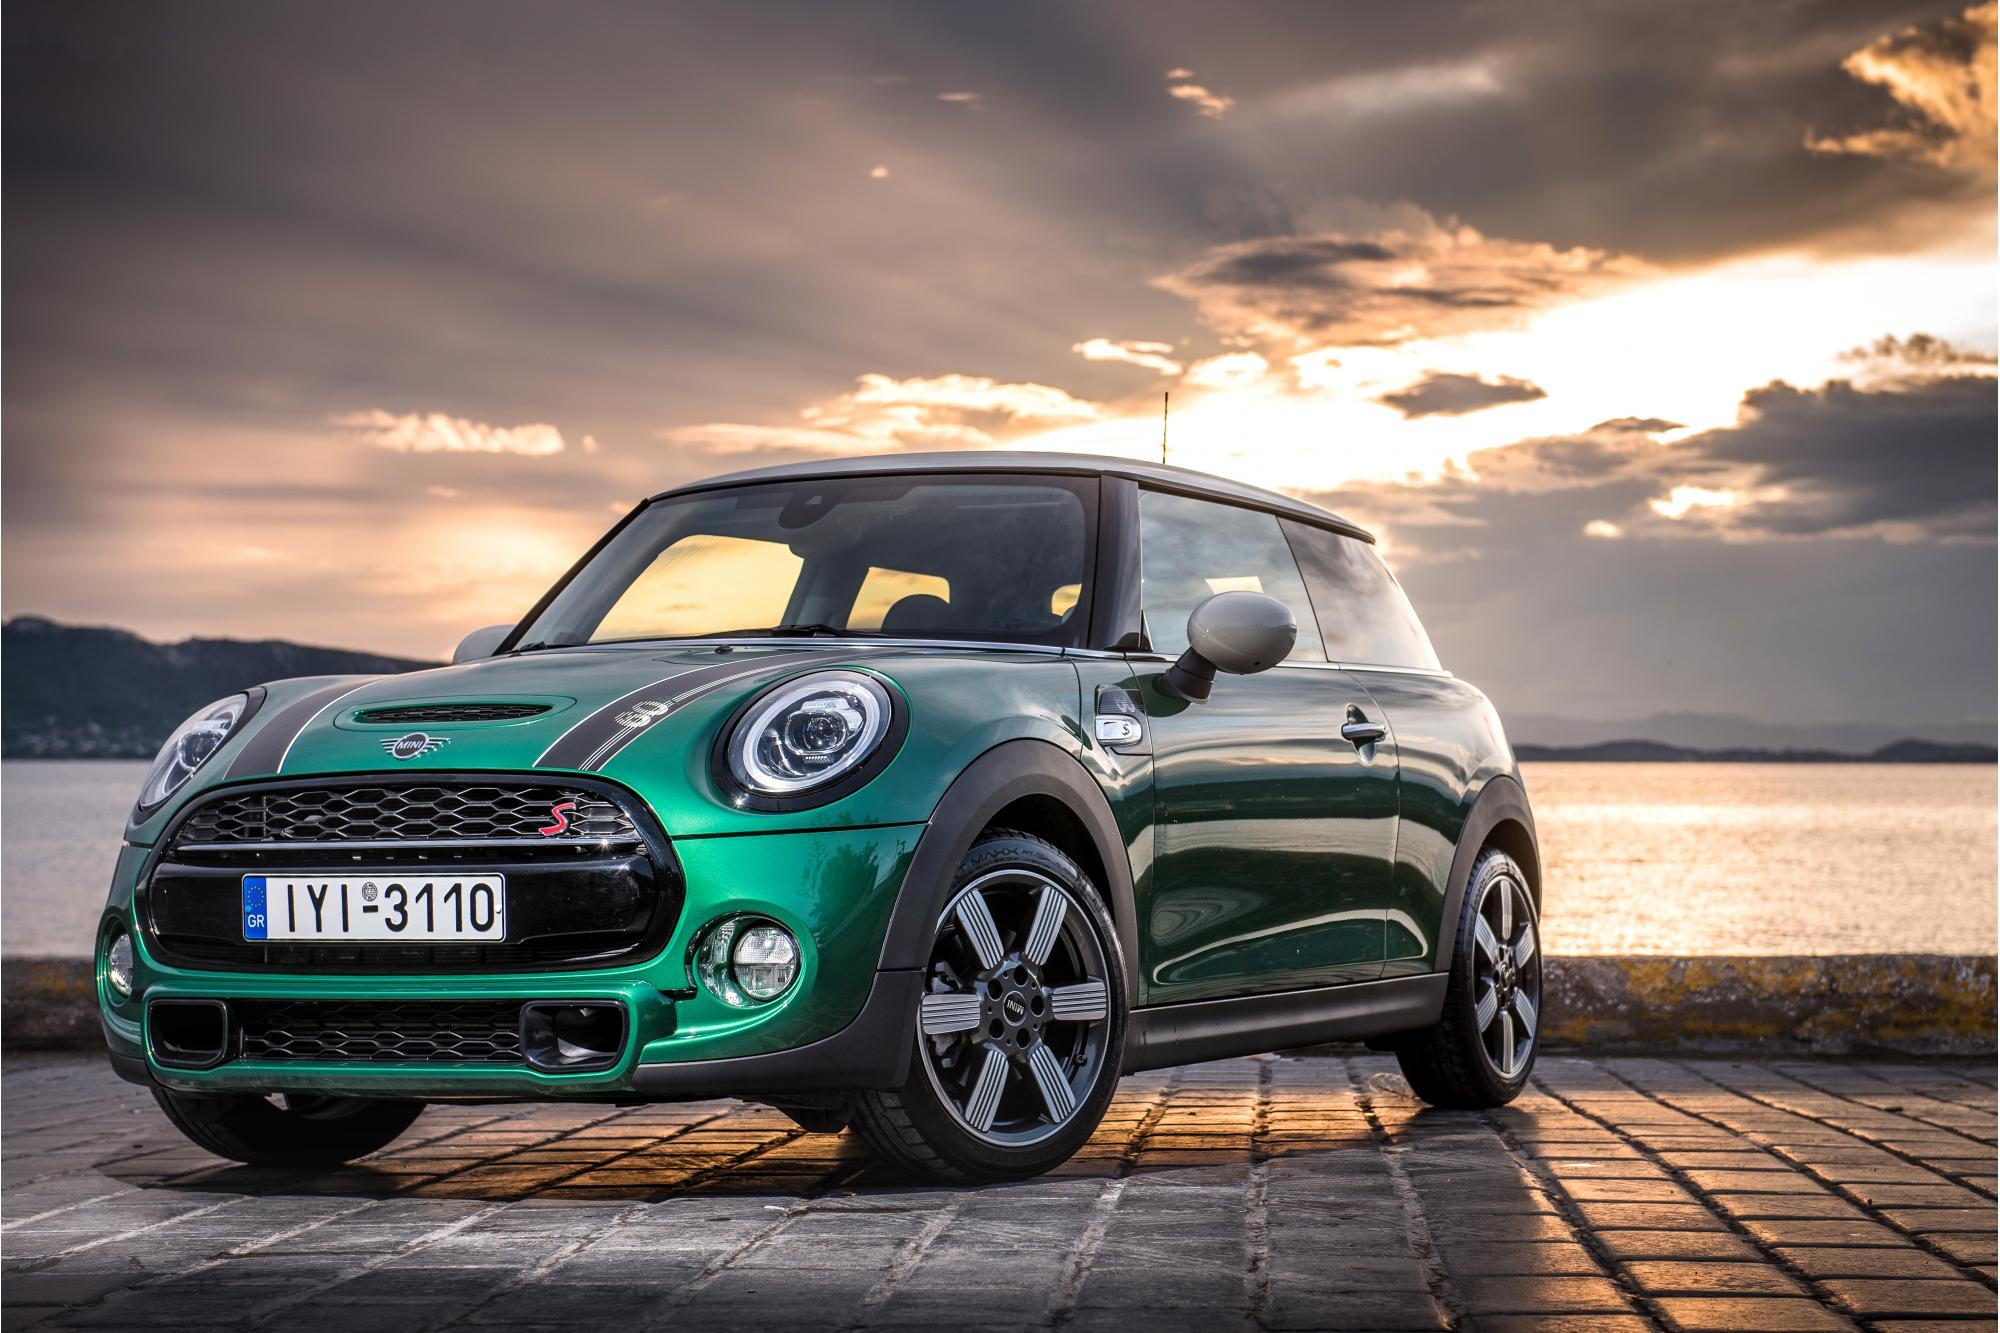 Mini Cooper S 60 years edition 192Ps